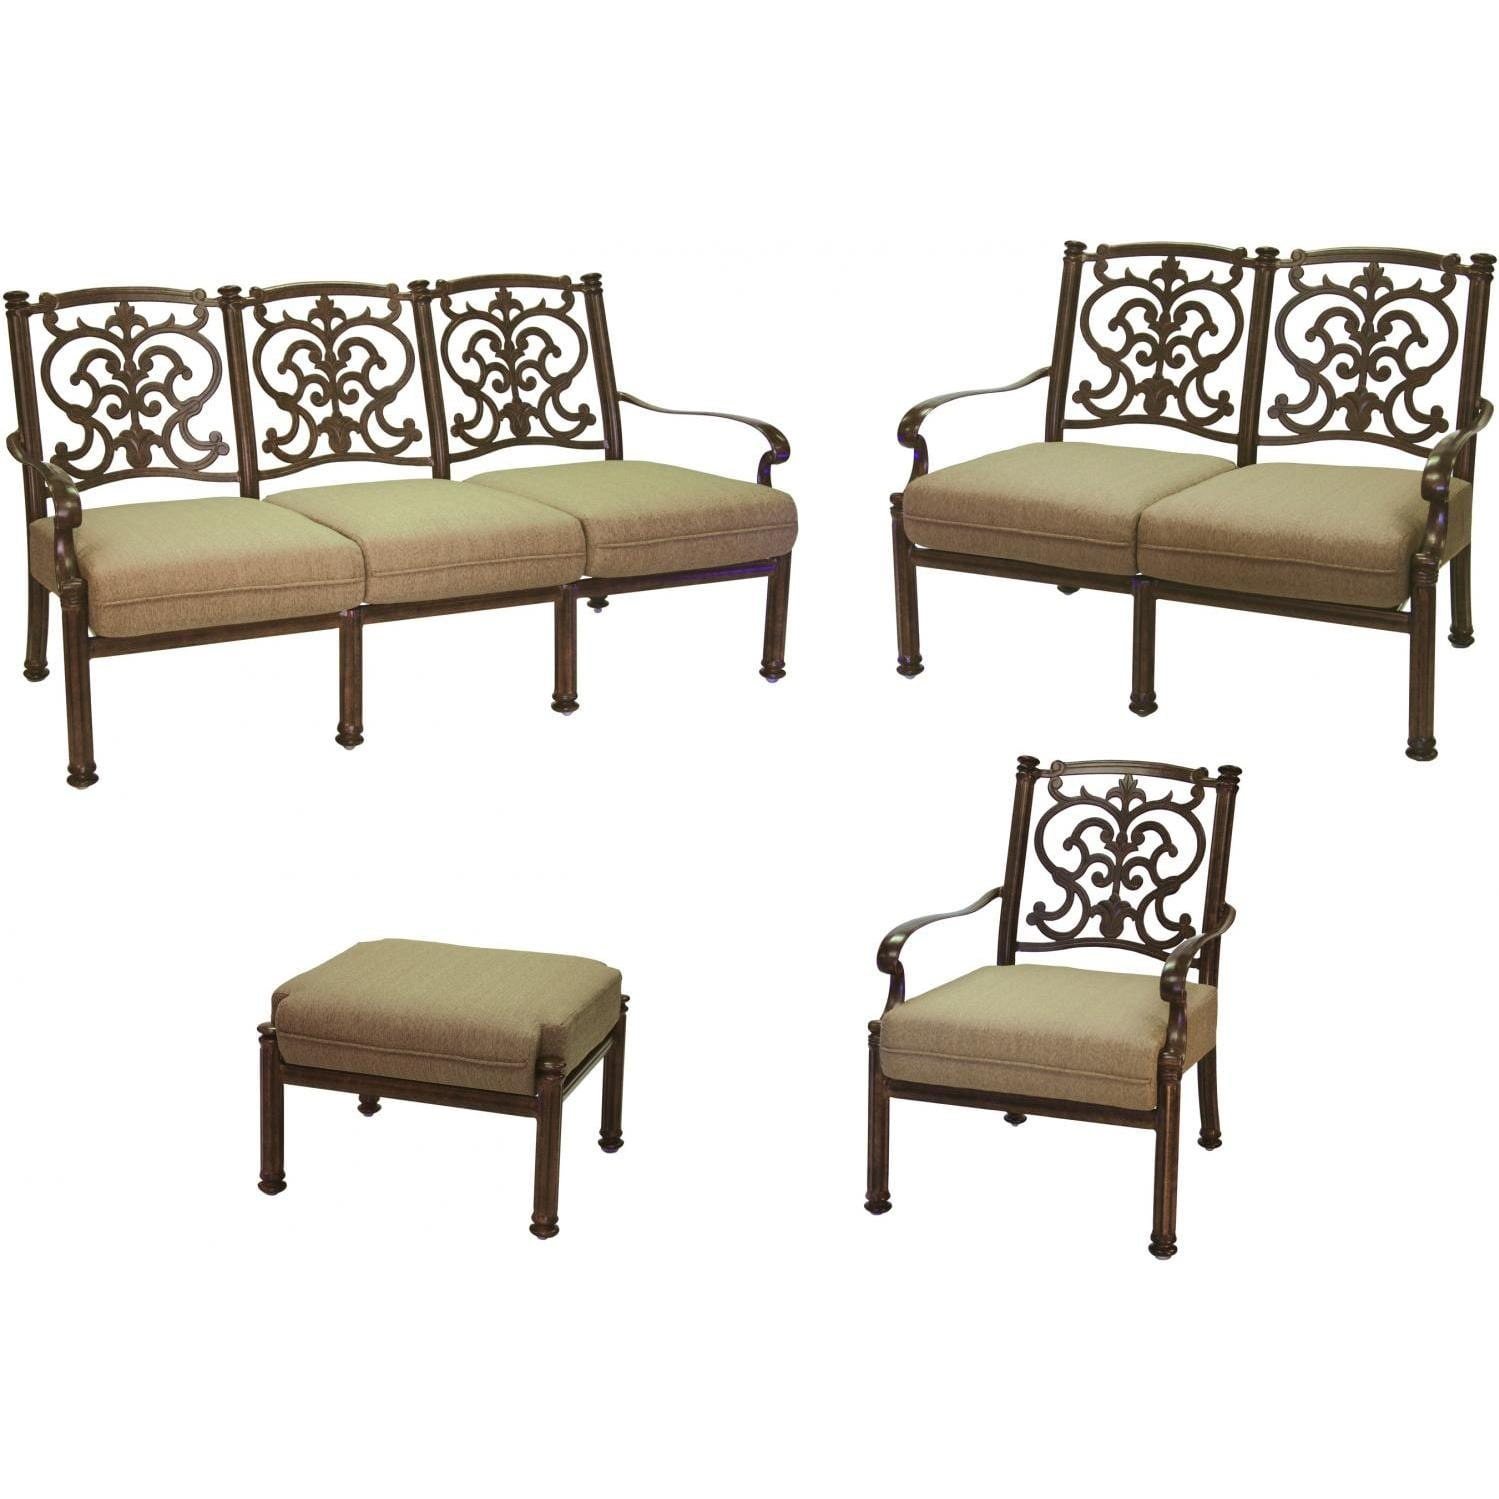 Darlee Santa Barbara 4 Piece Aluminum Conversation Seating Set